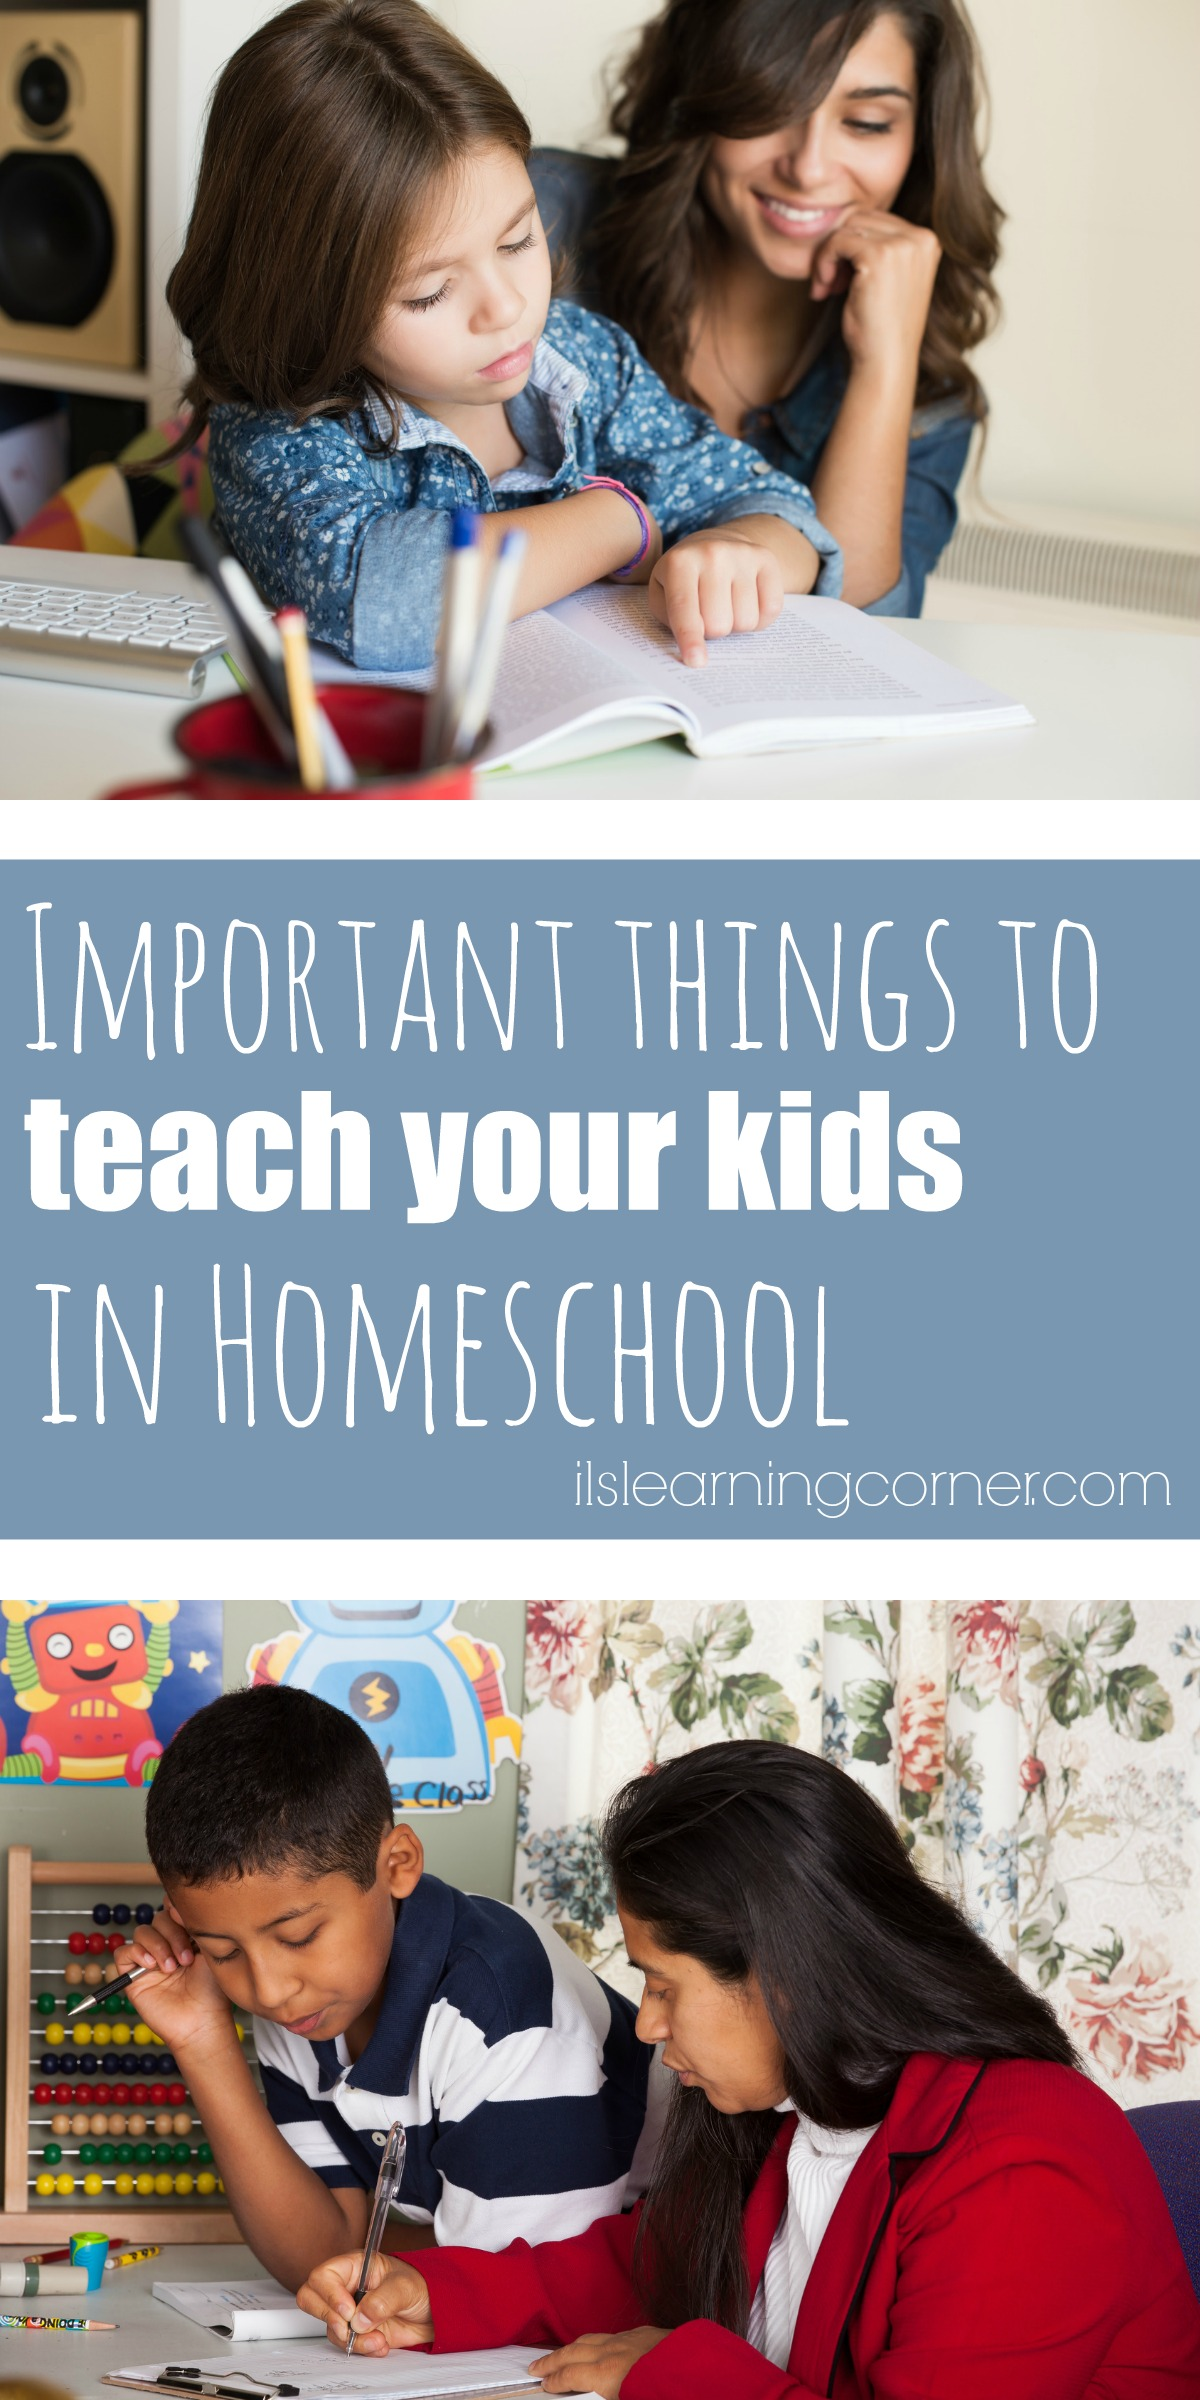 Teach Your Four Year Old To Read: Important Things To Teach Your Kids In Homeschool